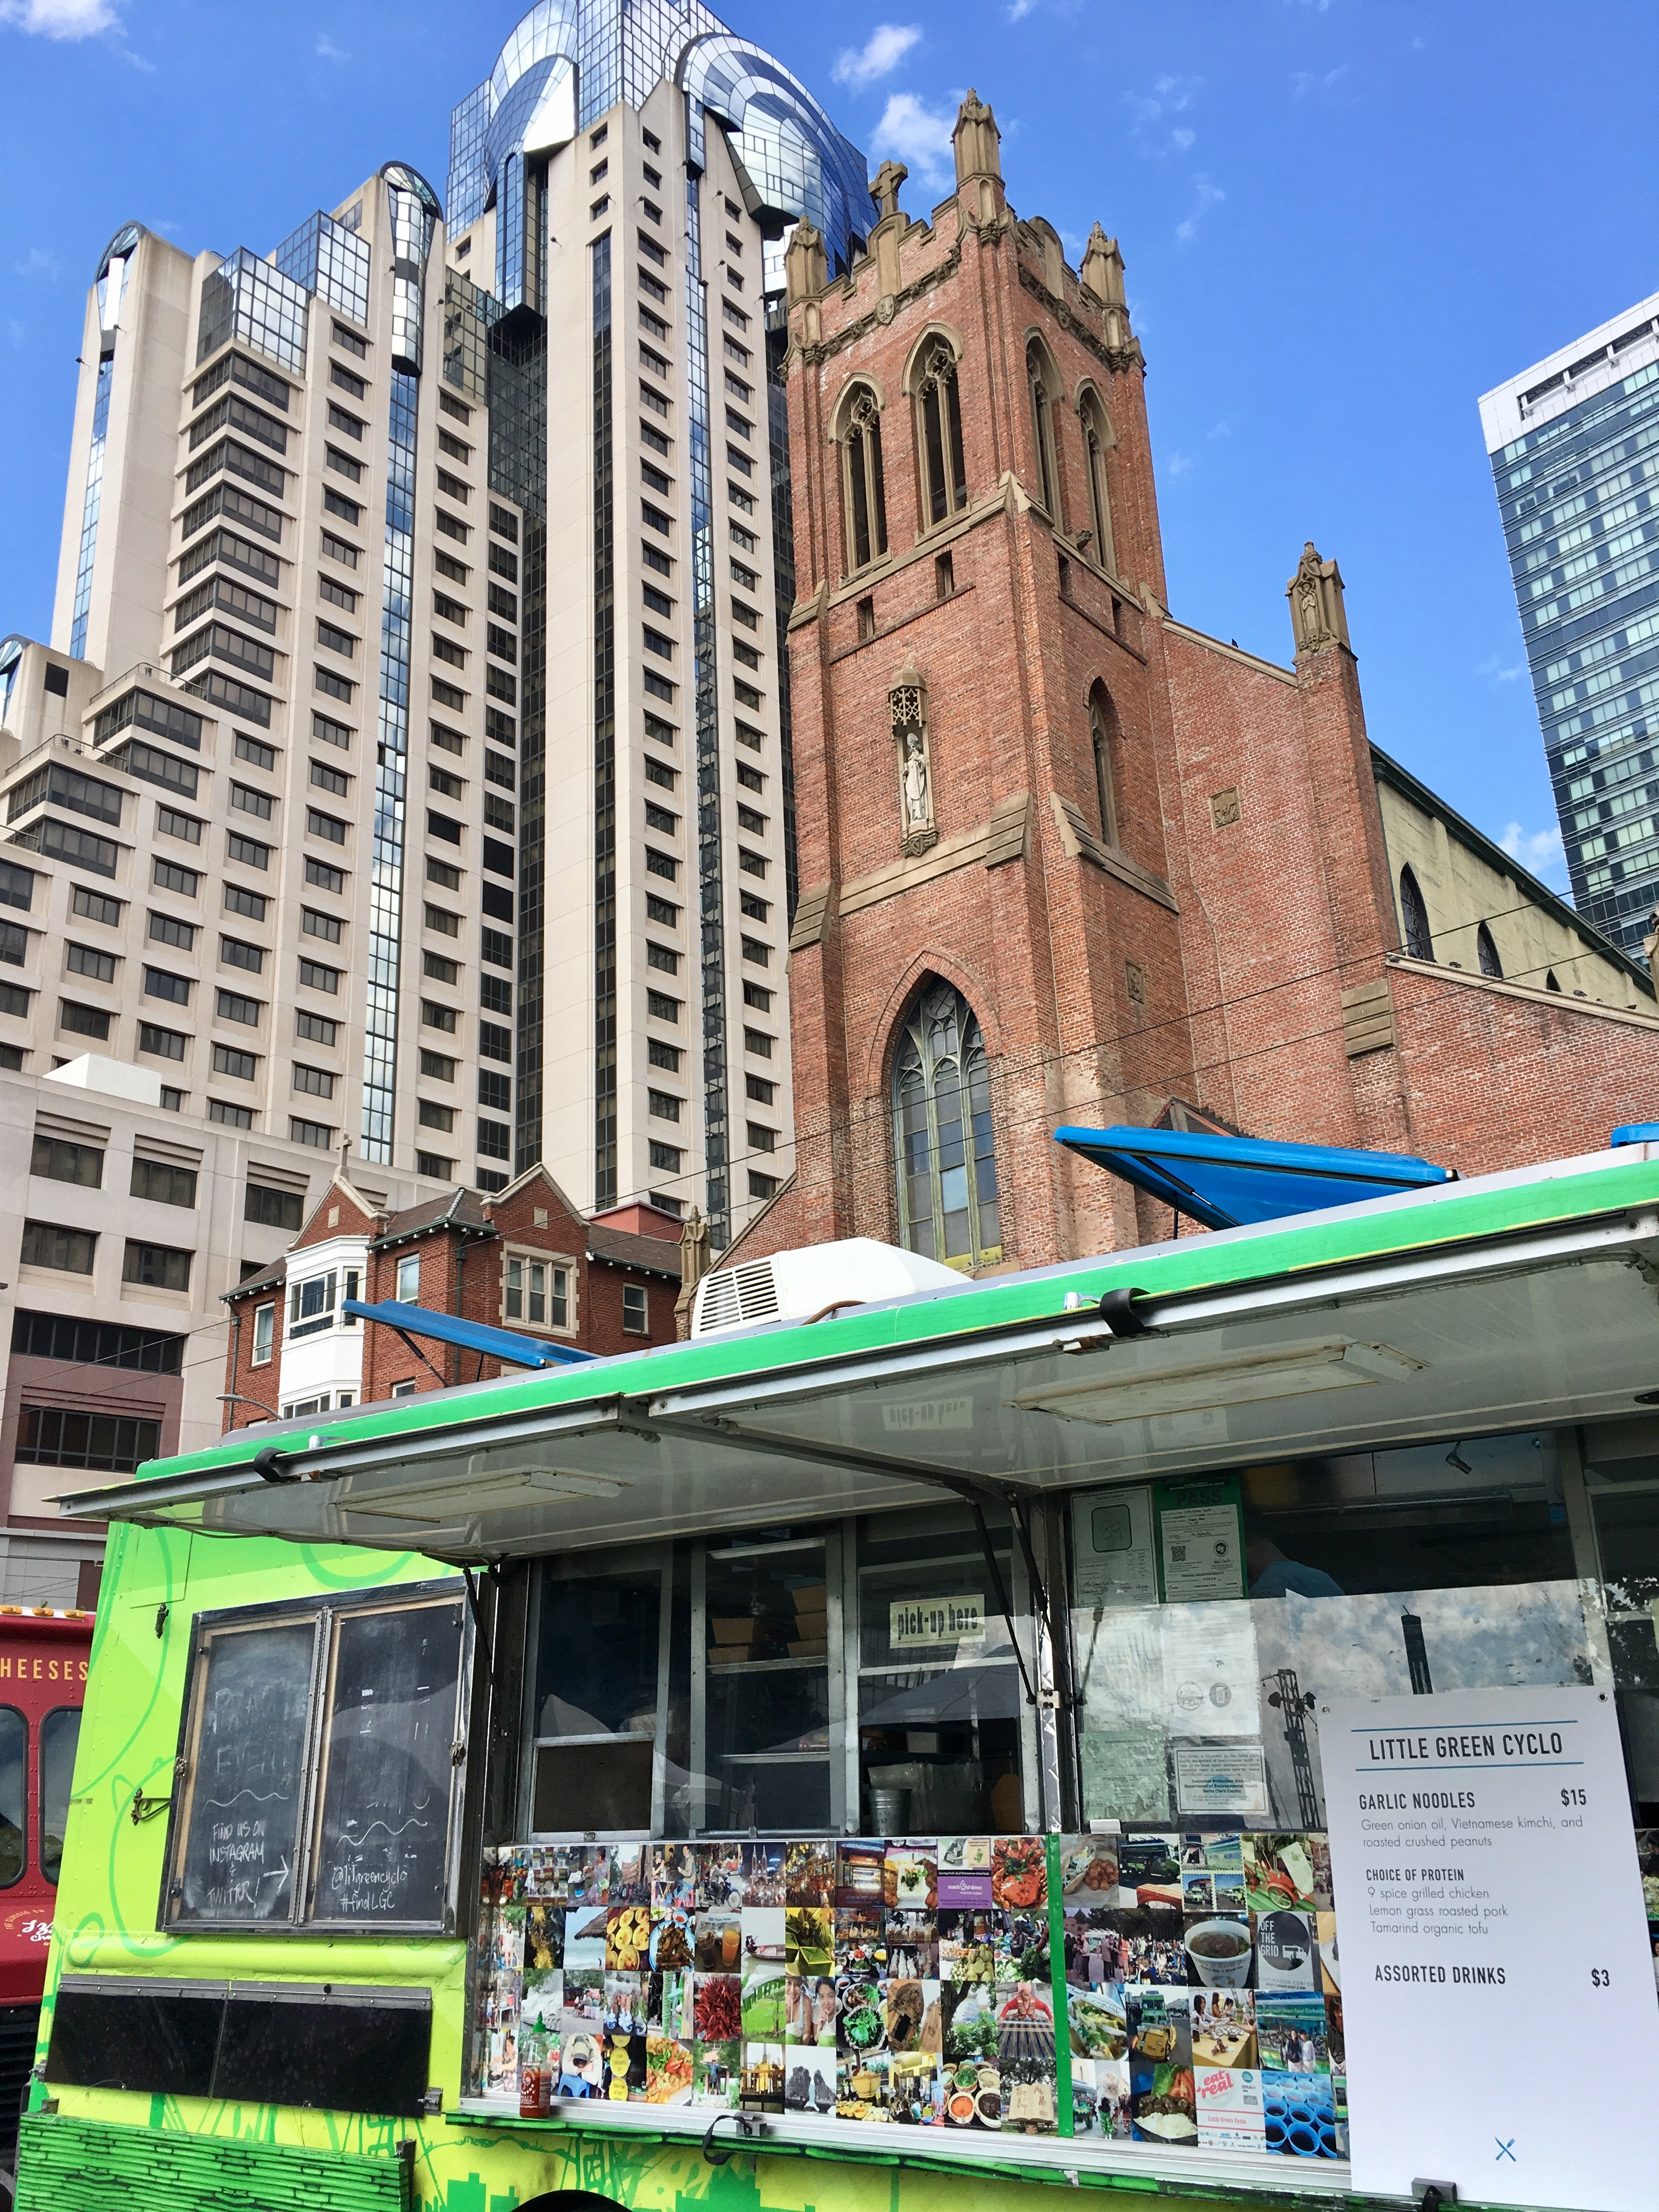 The Little Green Cyclo food truck in downtown San Francisco.